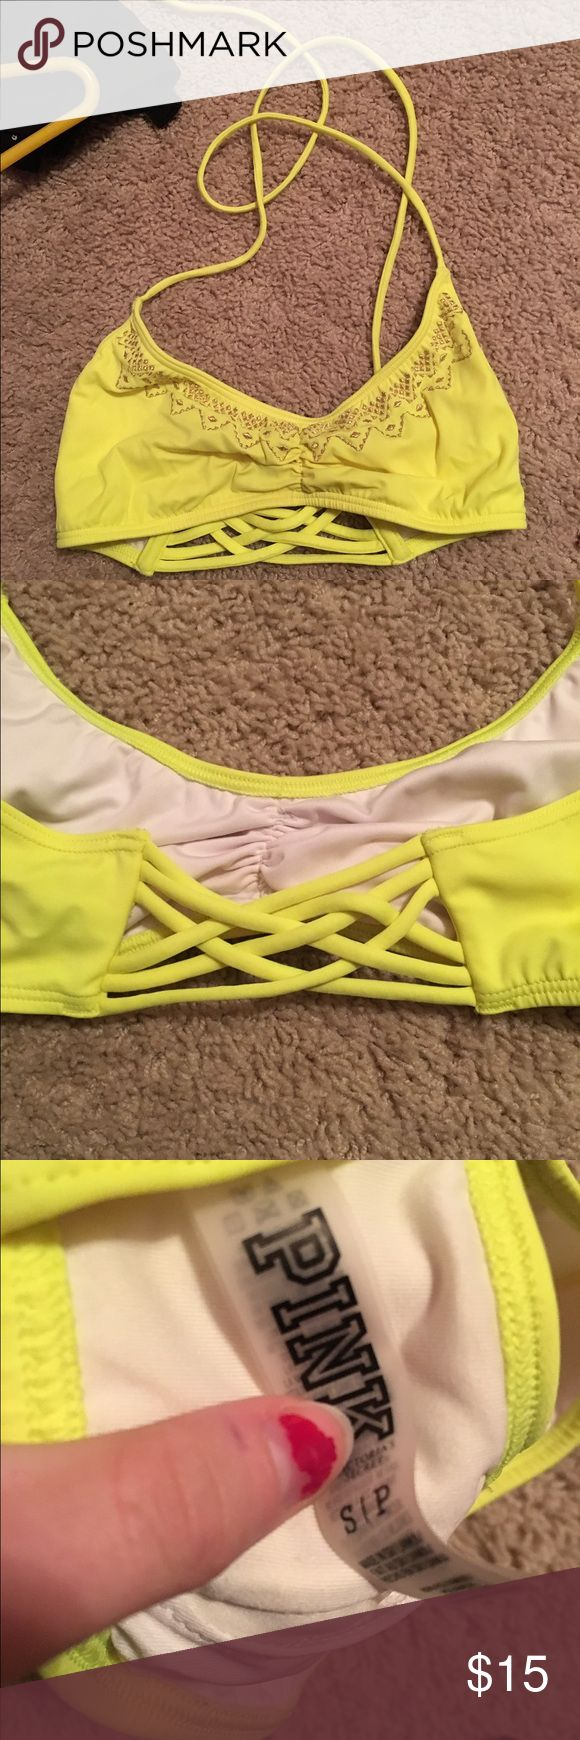 Tell and gold print tie halter beck cut out back Tell and gold print tie halter beck cut out back PINK Victoria's Secret Swim Bikinis